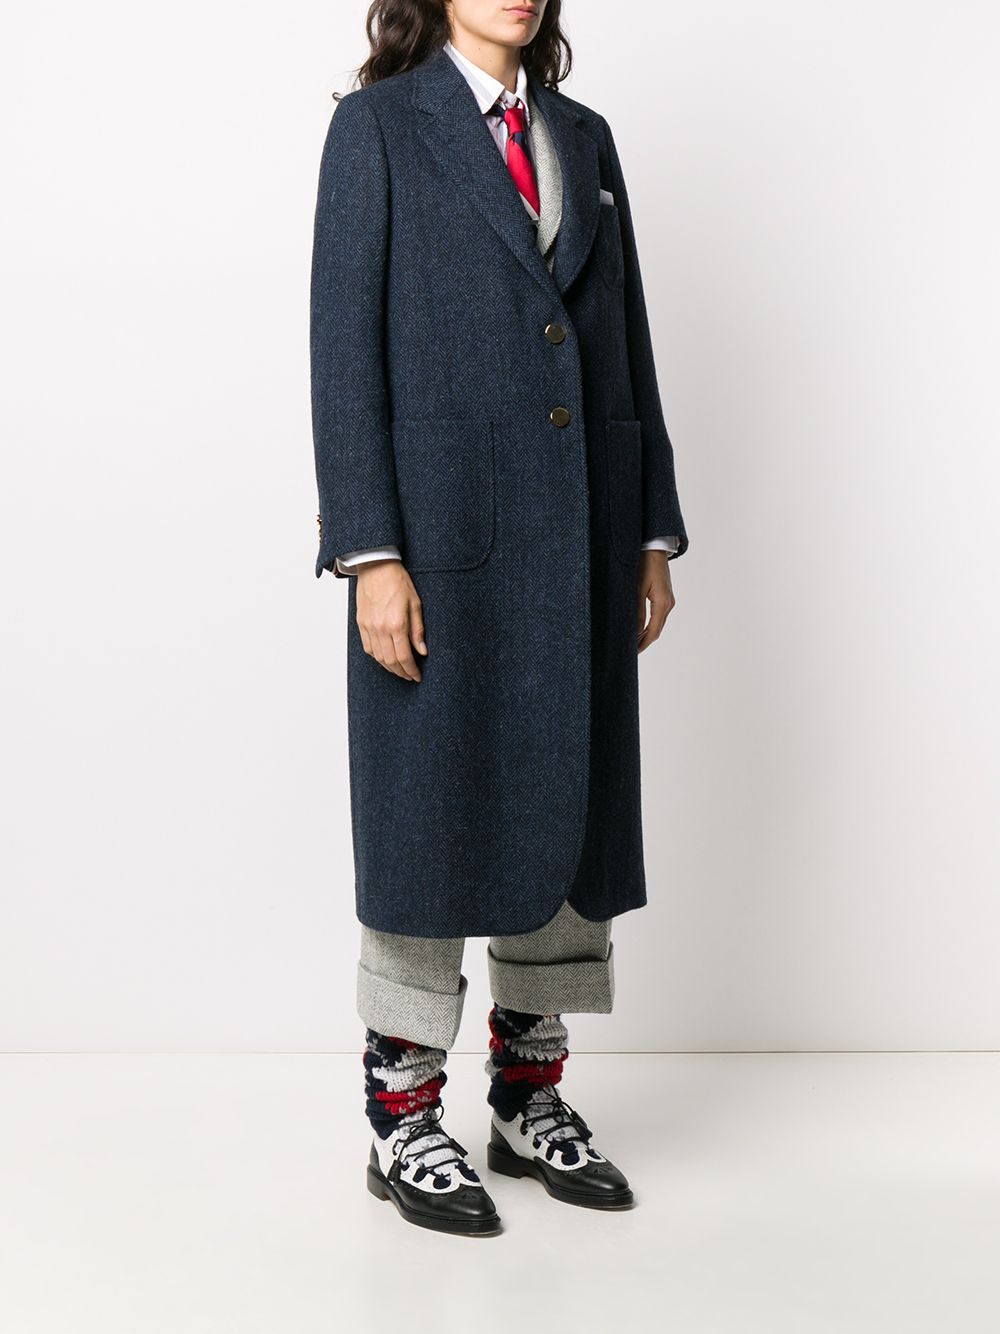 THOM BROWNE WOMEN ELONGATED SACK OVERCOAT - FIT 2 - IN HERRINGBONE HARRIS TWEED